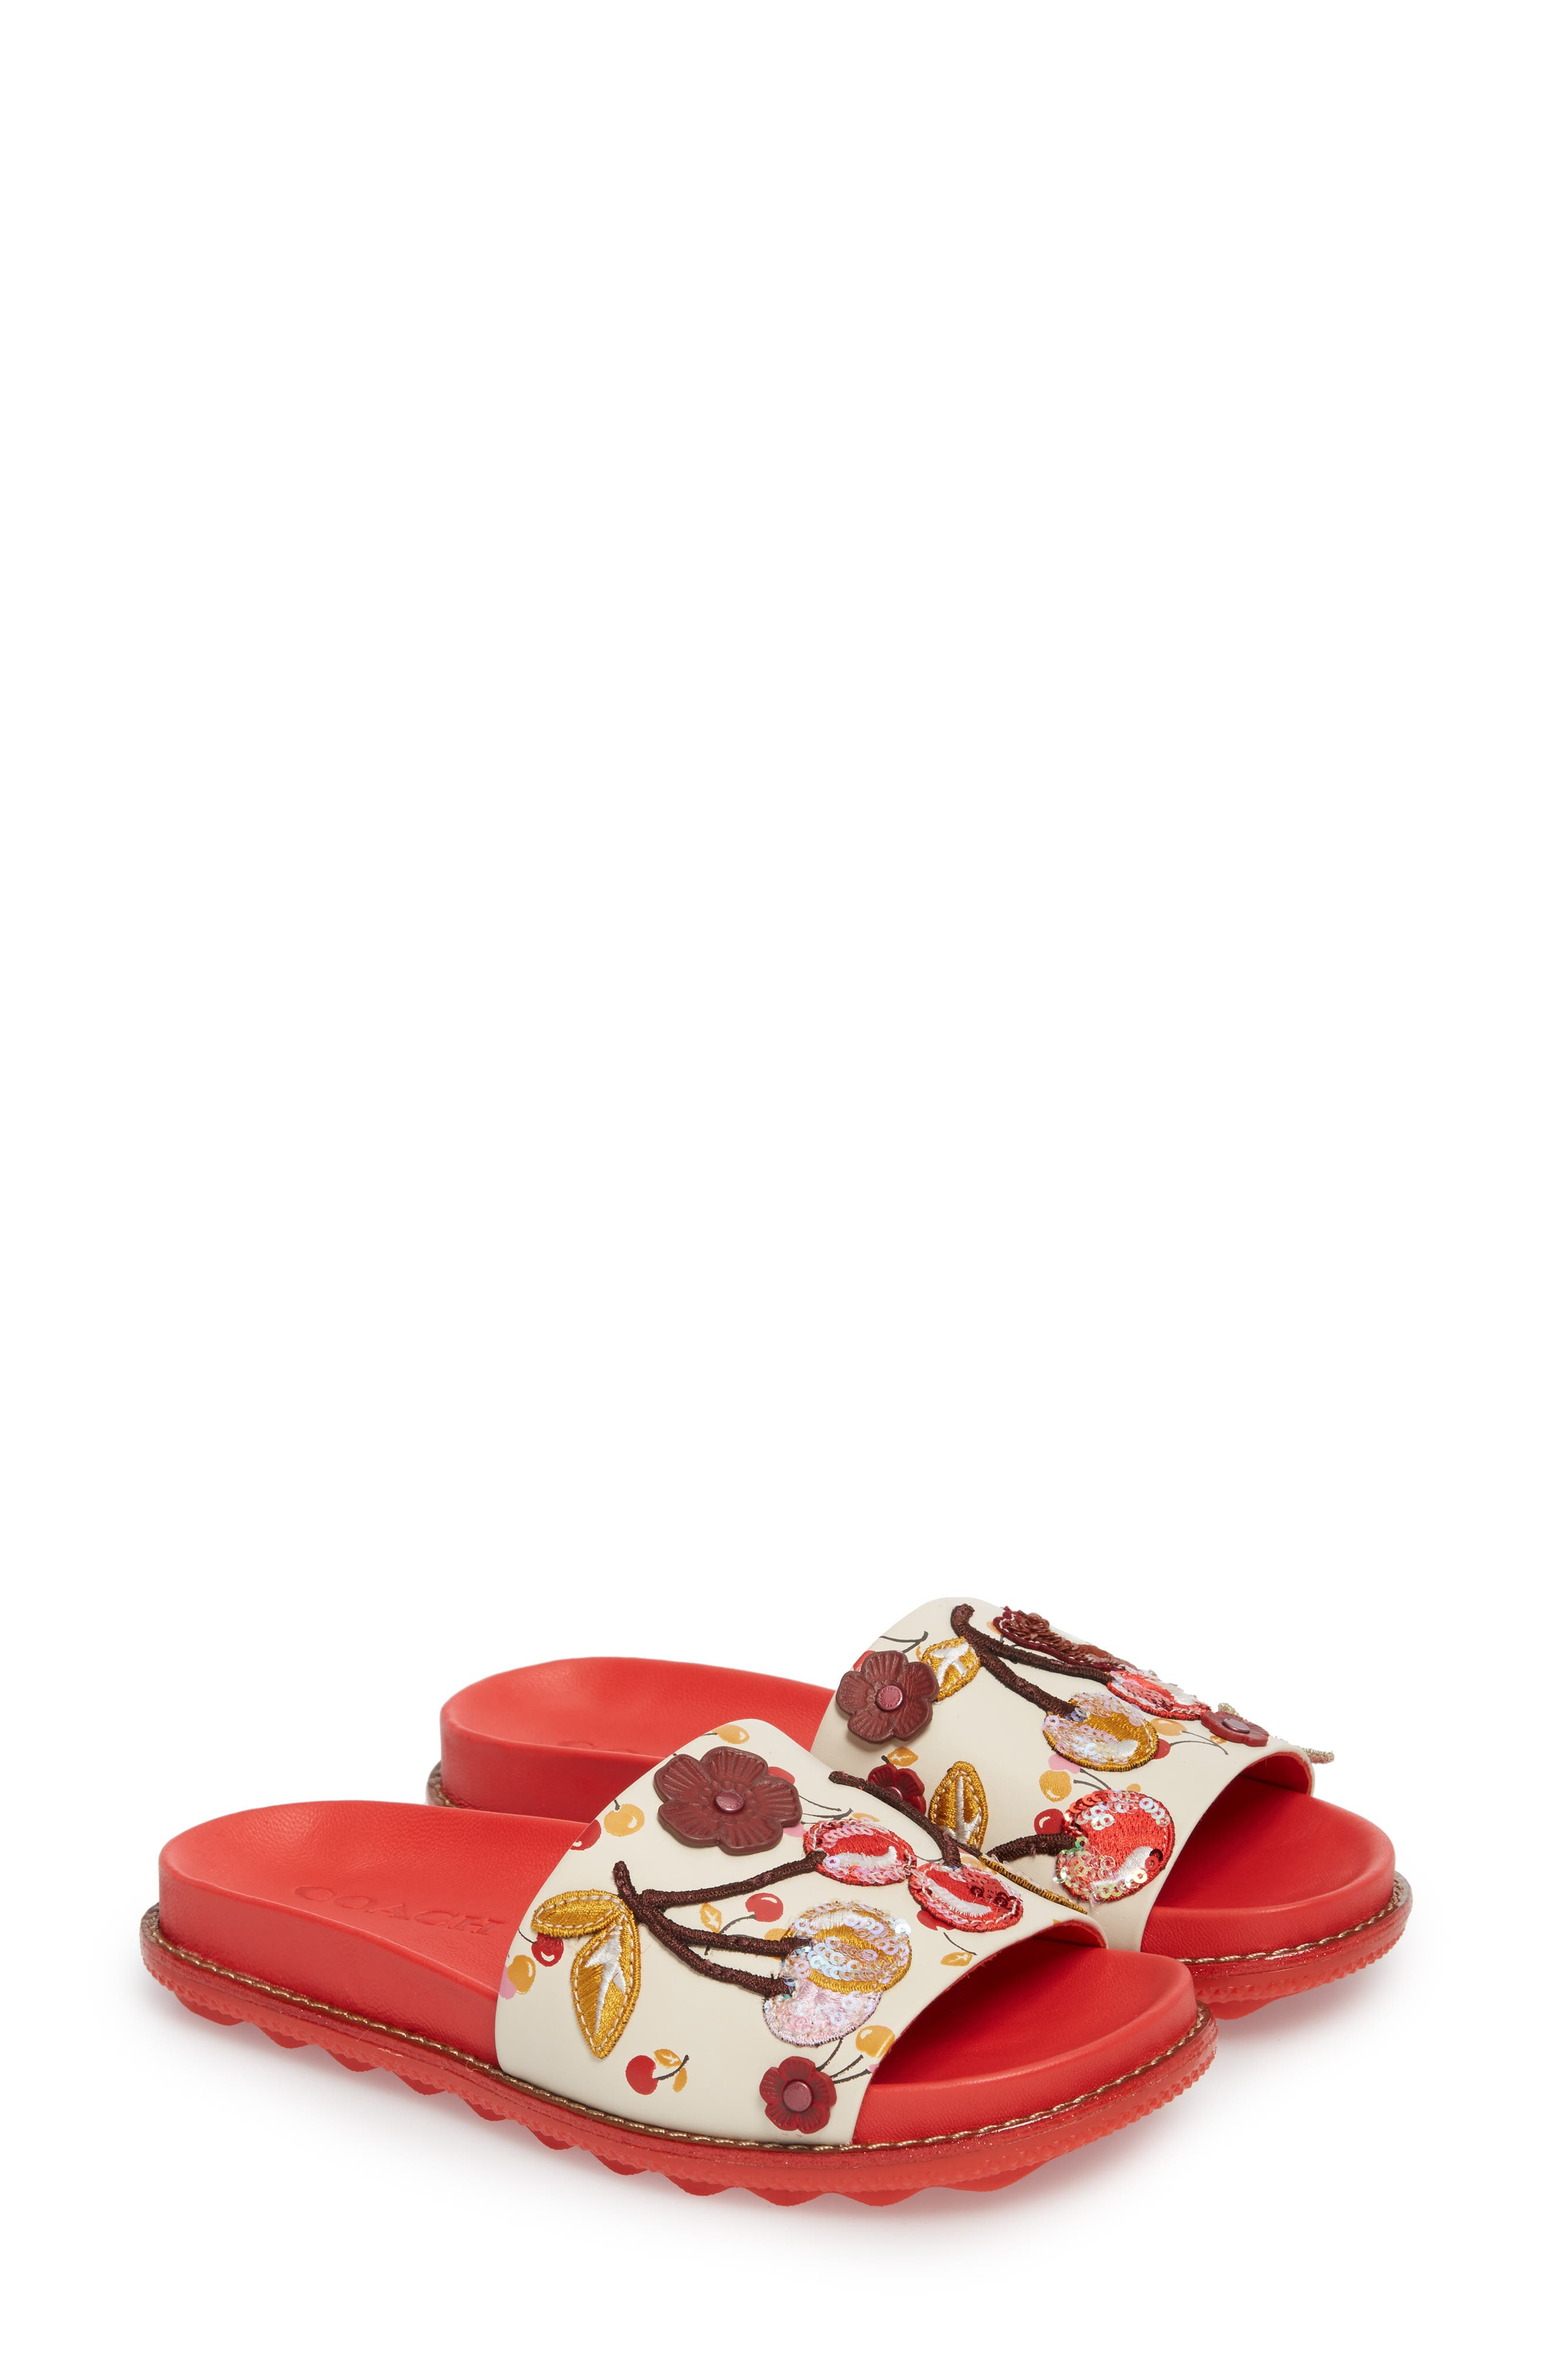 Patch Sport Slide Sandal,                         Main,                         color, Ivory/ Red Leather